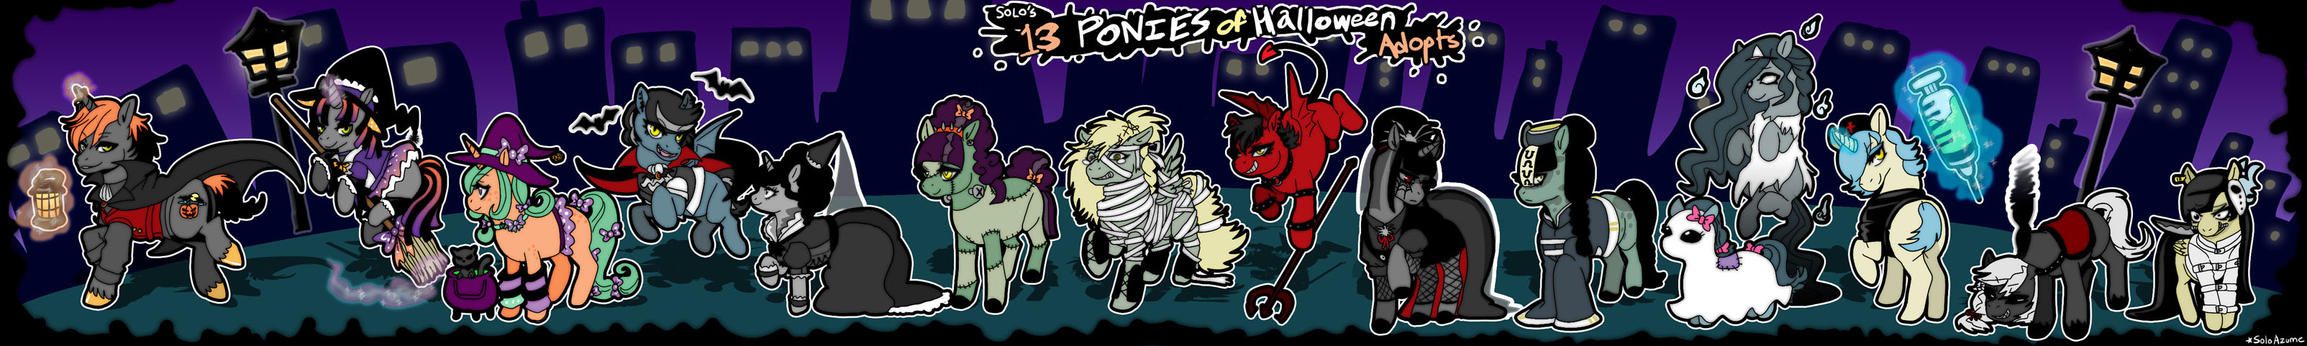 13 Ponies of Halloween Adoptables [01/14 OPEN] by azume-adopts